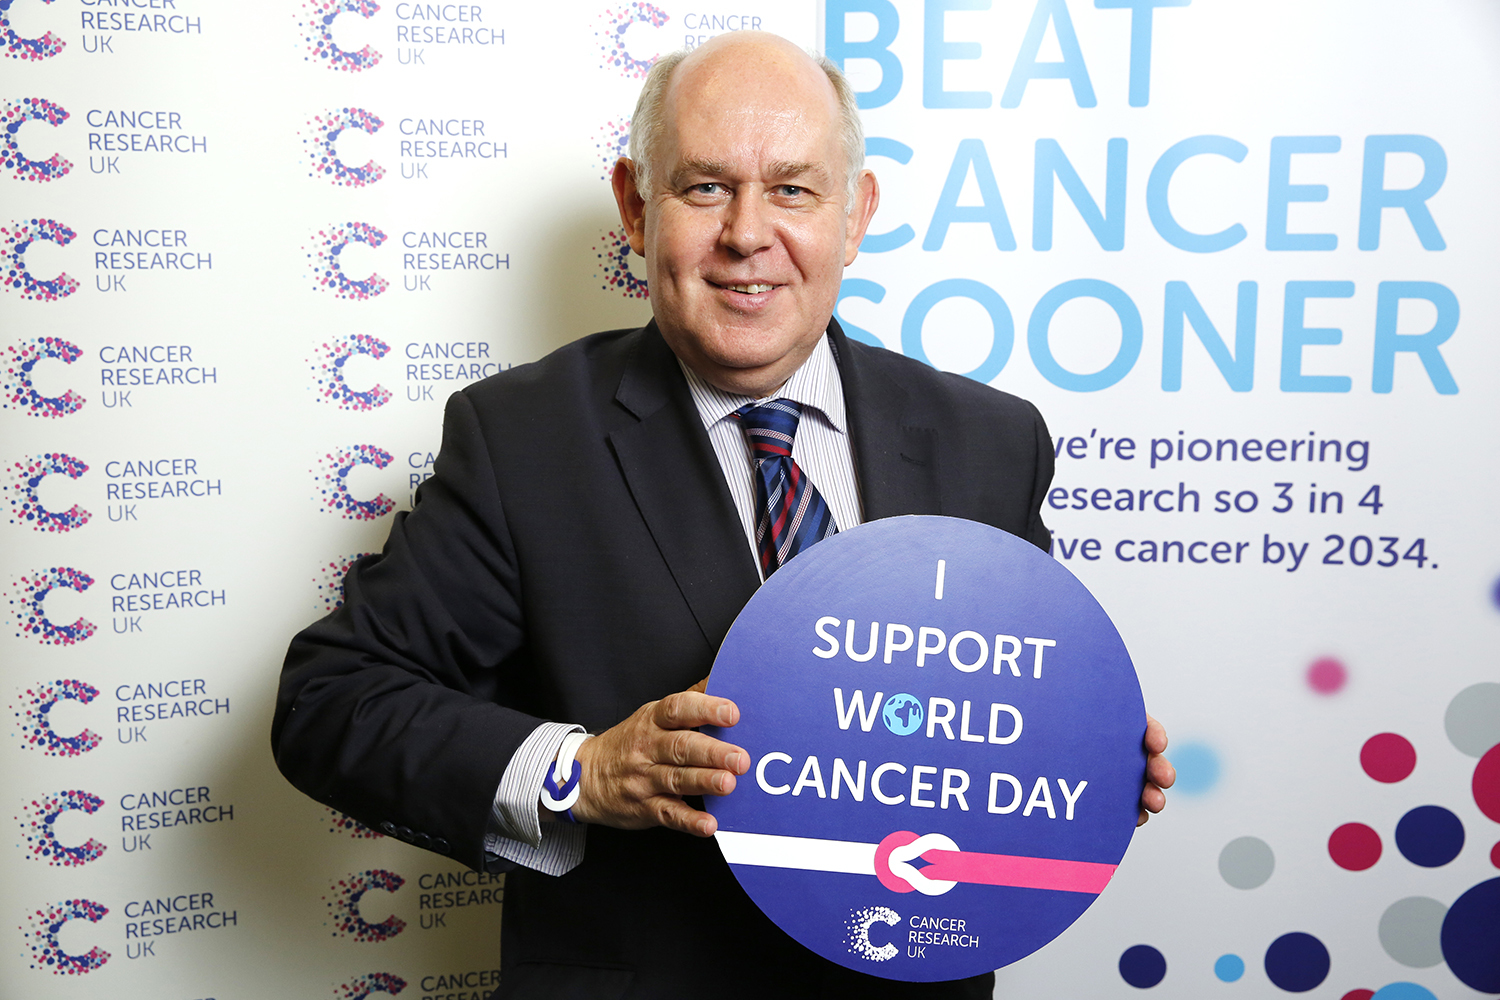 Albert Owen Ynys Môn MP shows his support for Cancer Research UK on World Cancer Day